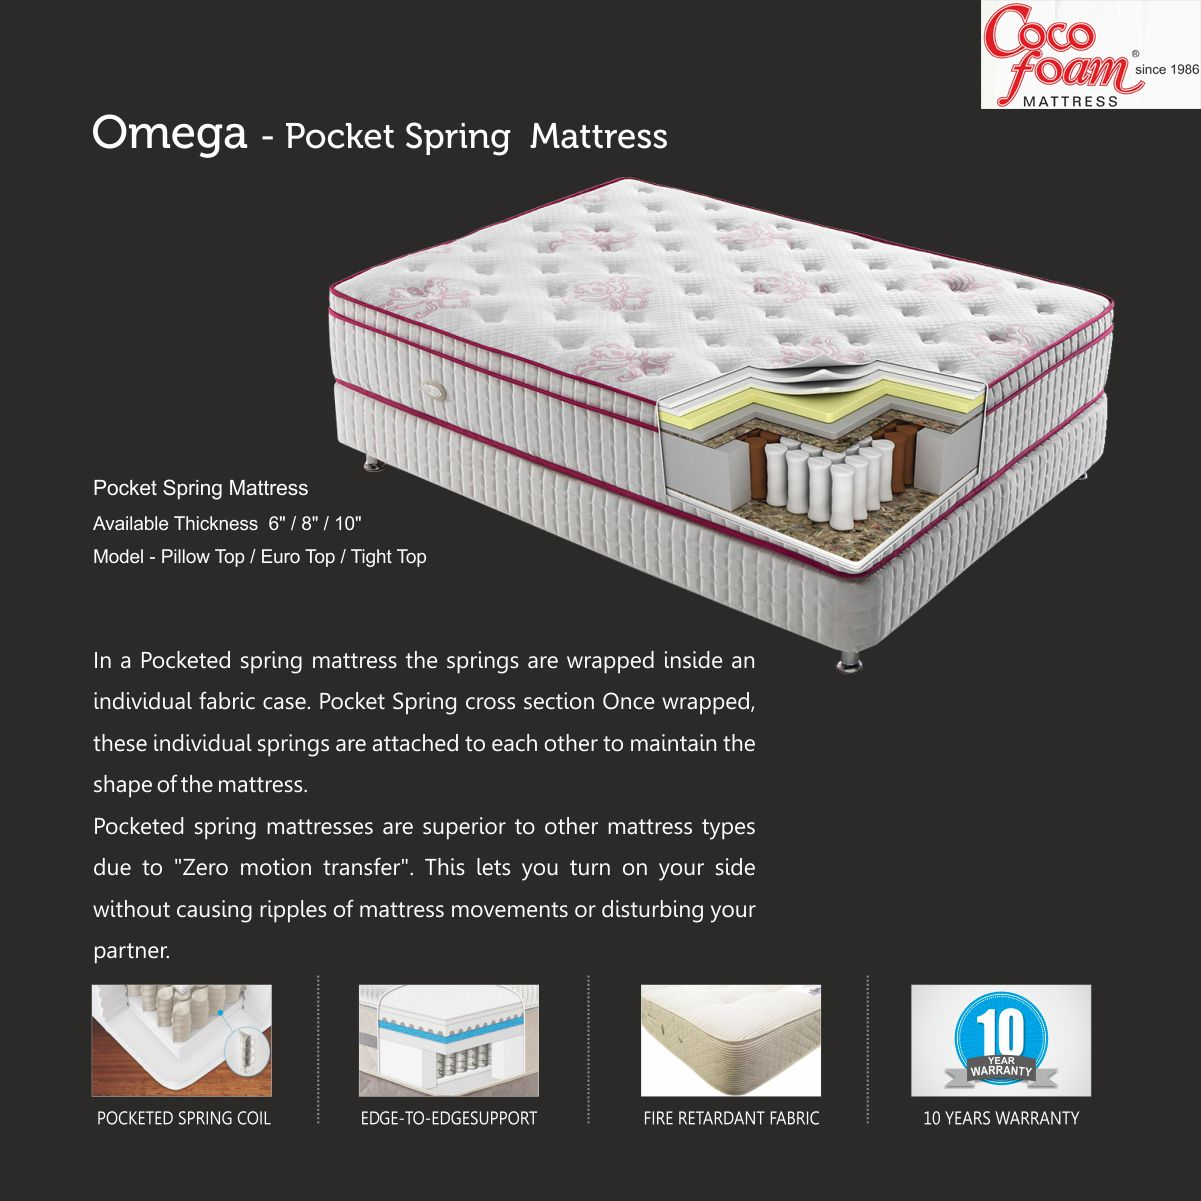 Omega Pocket Spring Mattress Pocket Spring Mattress Available Thickness 6 8 10 Intches Pocket Spring Mattre Pocket Spring Mattress Mattress Springs Mattress